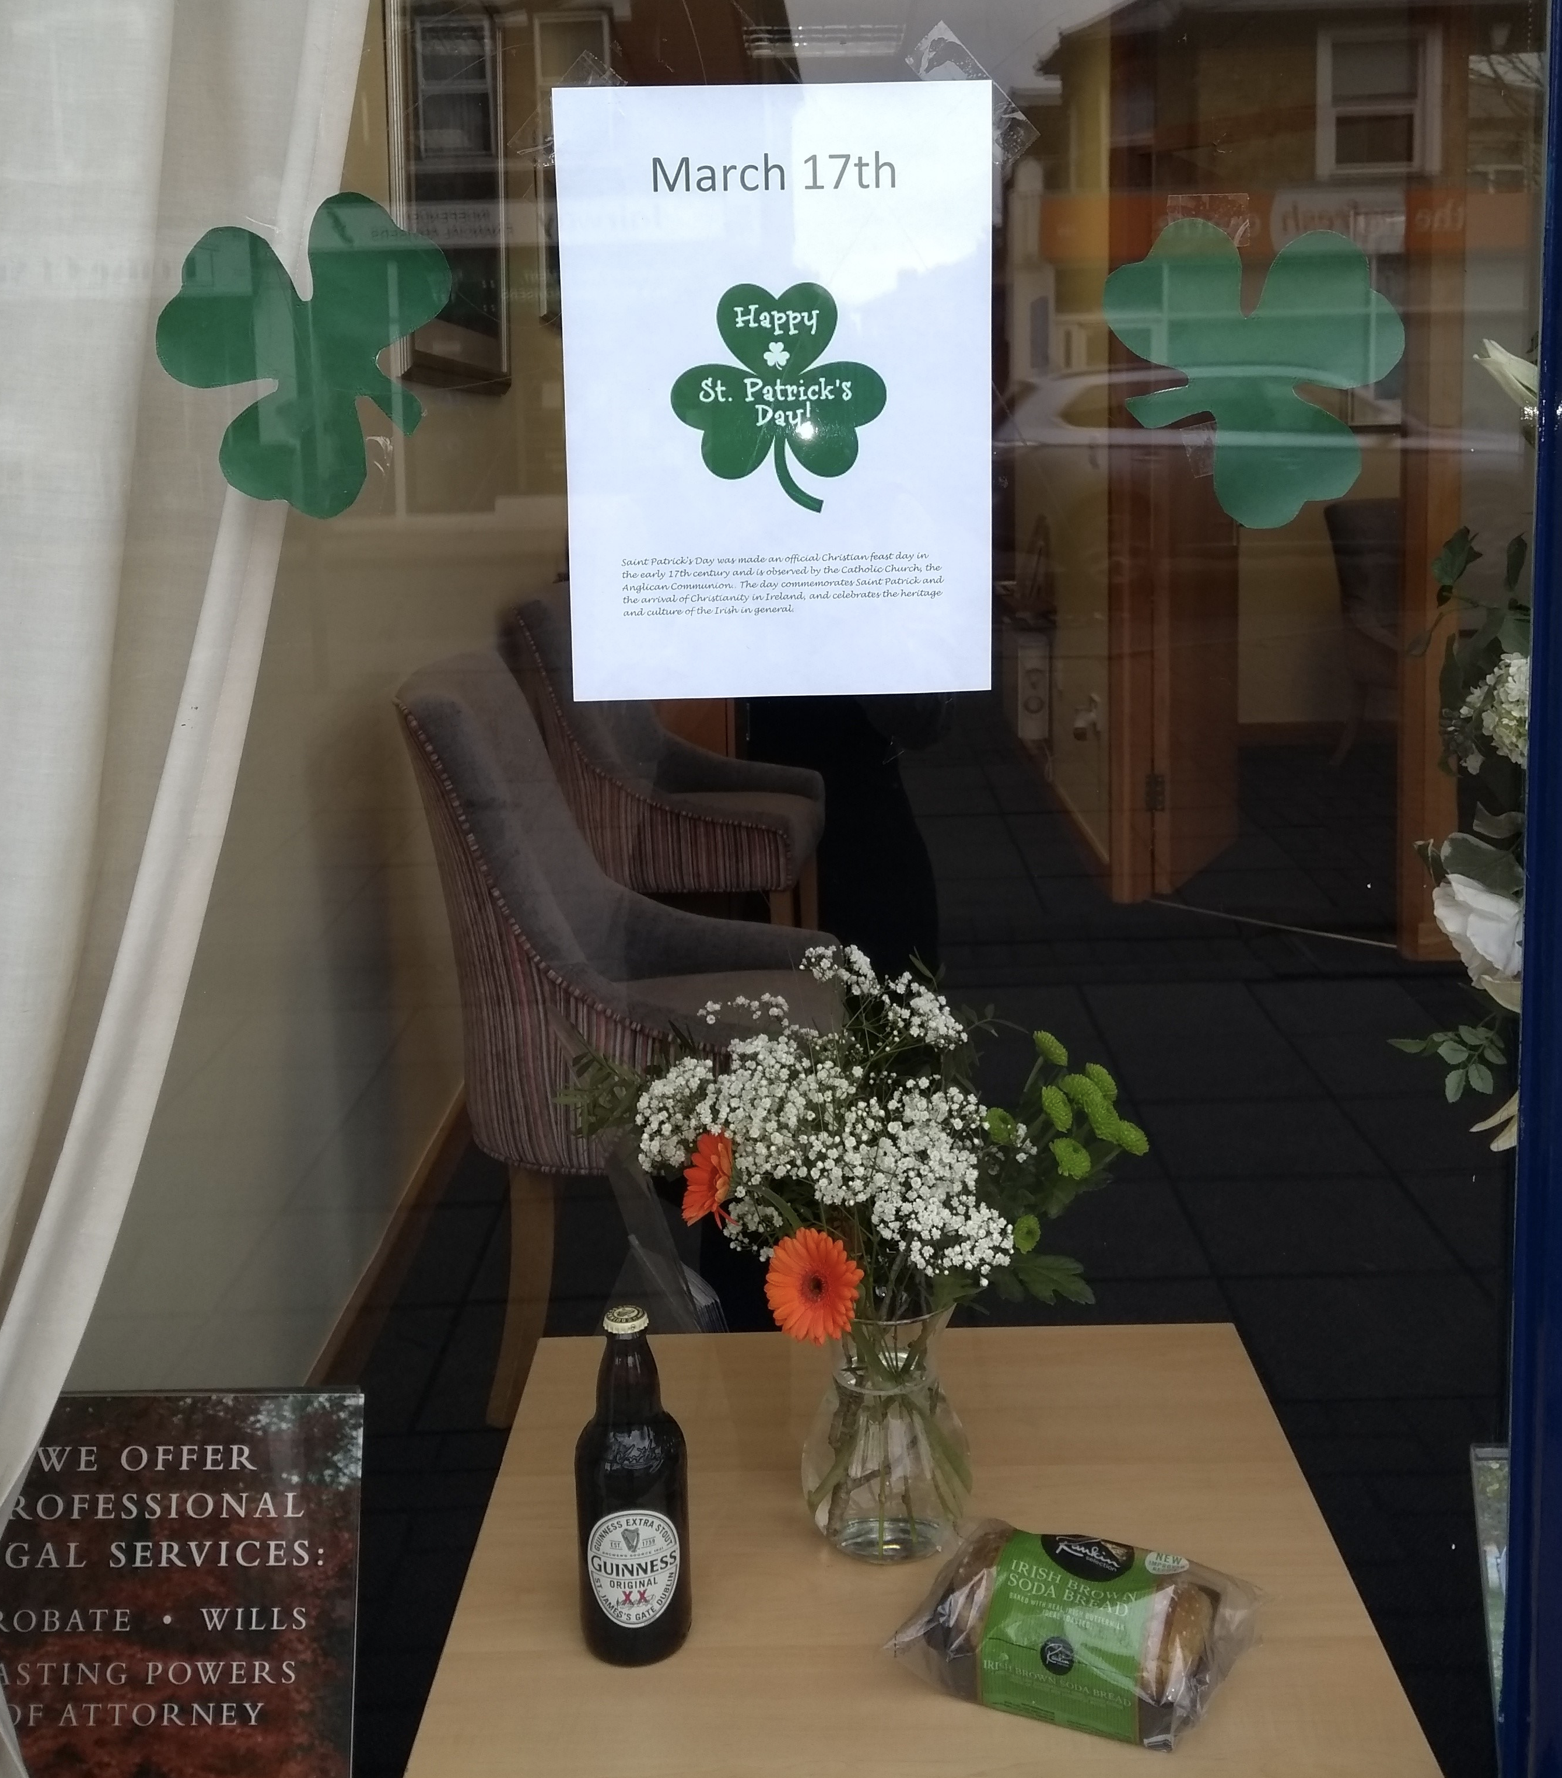 East Molesey Wish Everyone a Happy St Patrick's Day